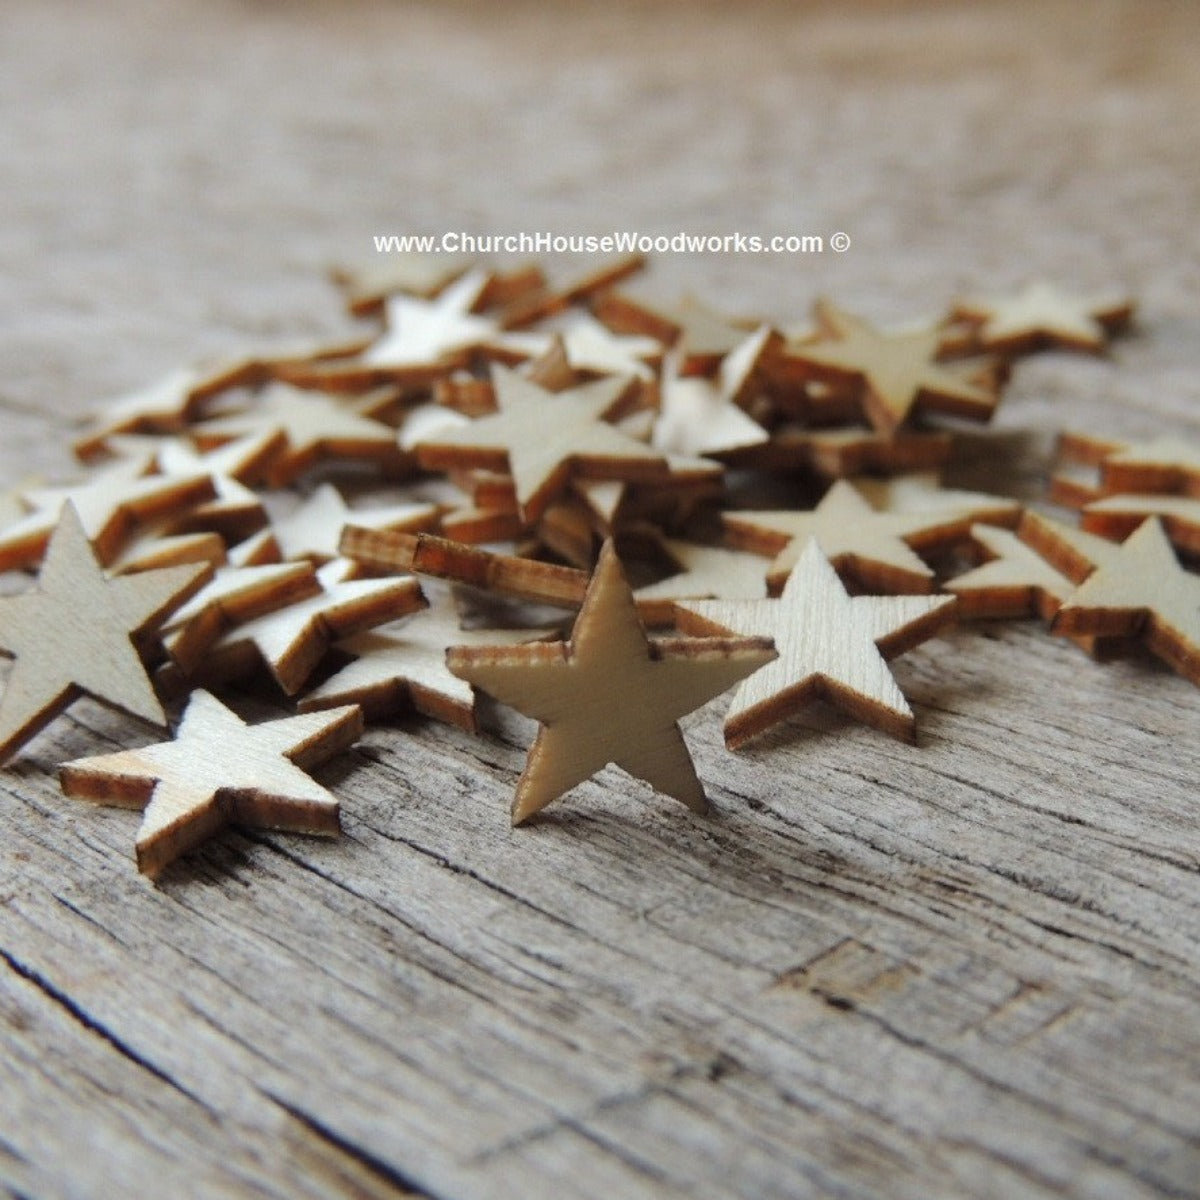 Rustic stars for crafts - 50 Mini Wood Stars Very Small 1 2 Inch Size